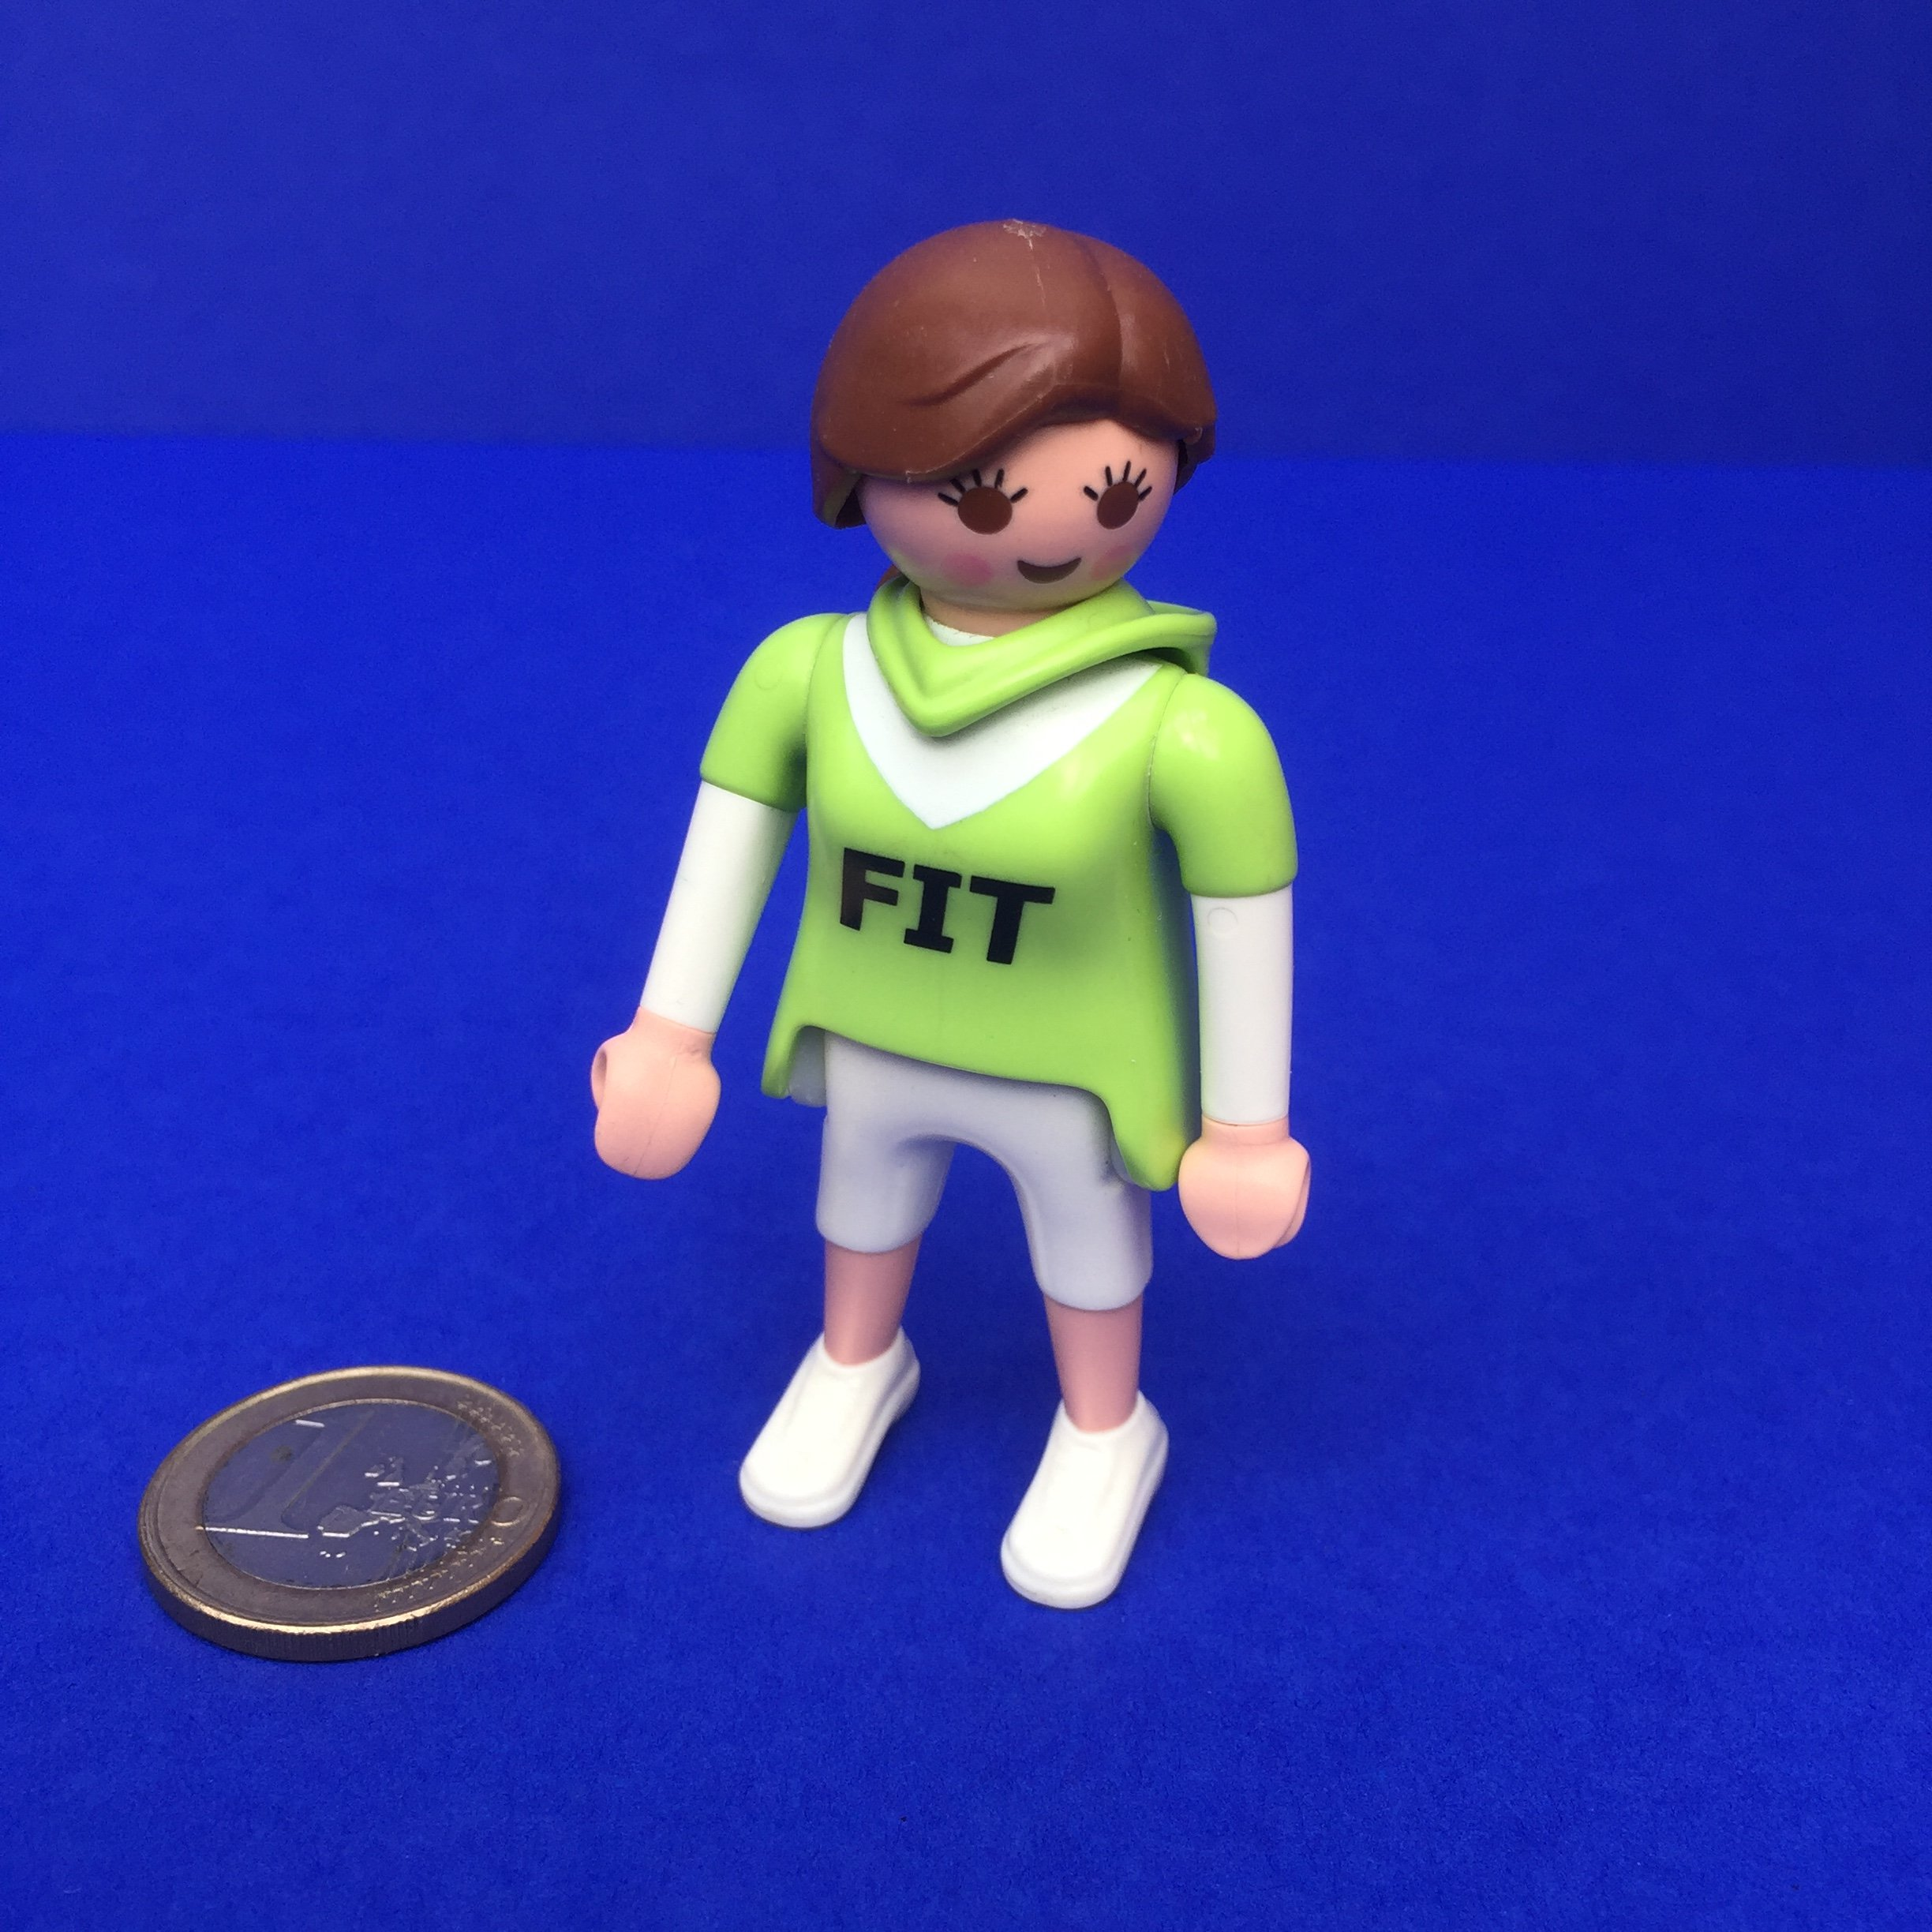 Playmobil-vrouw-fit